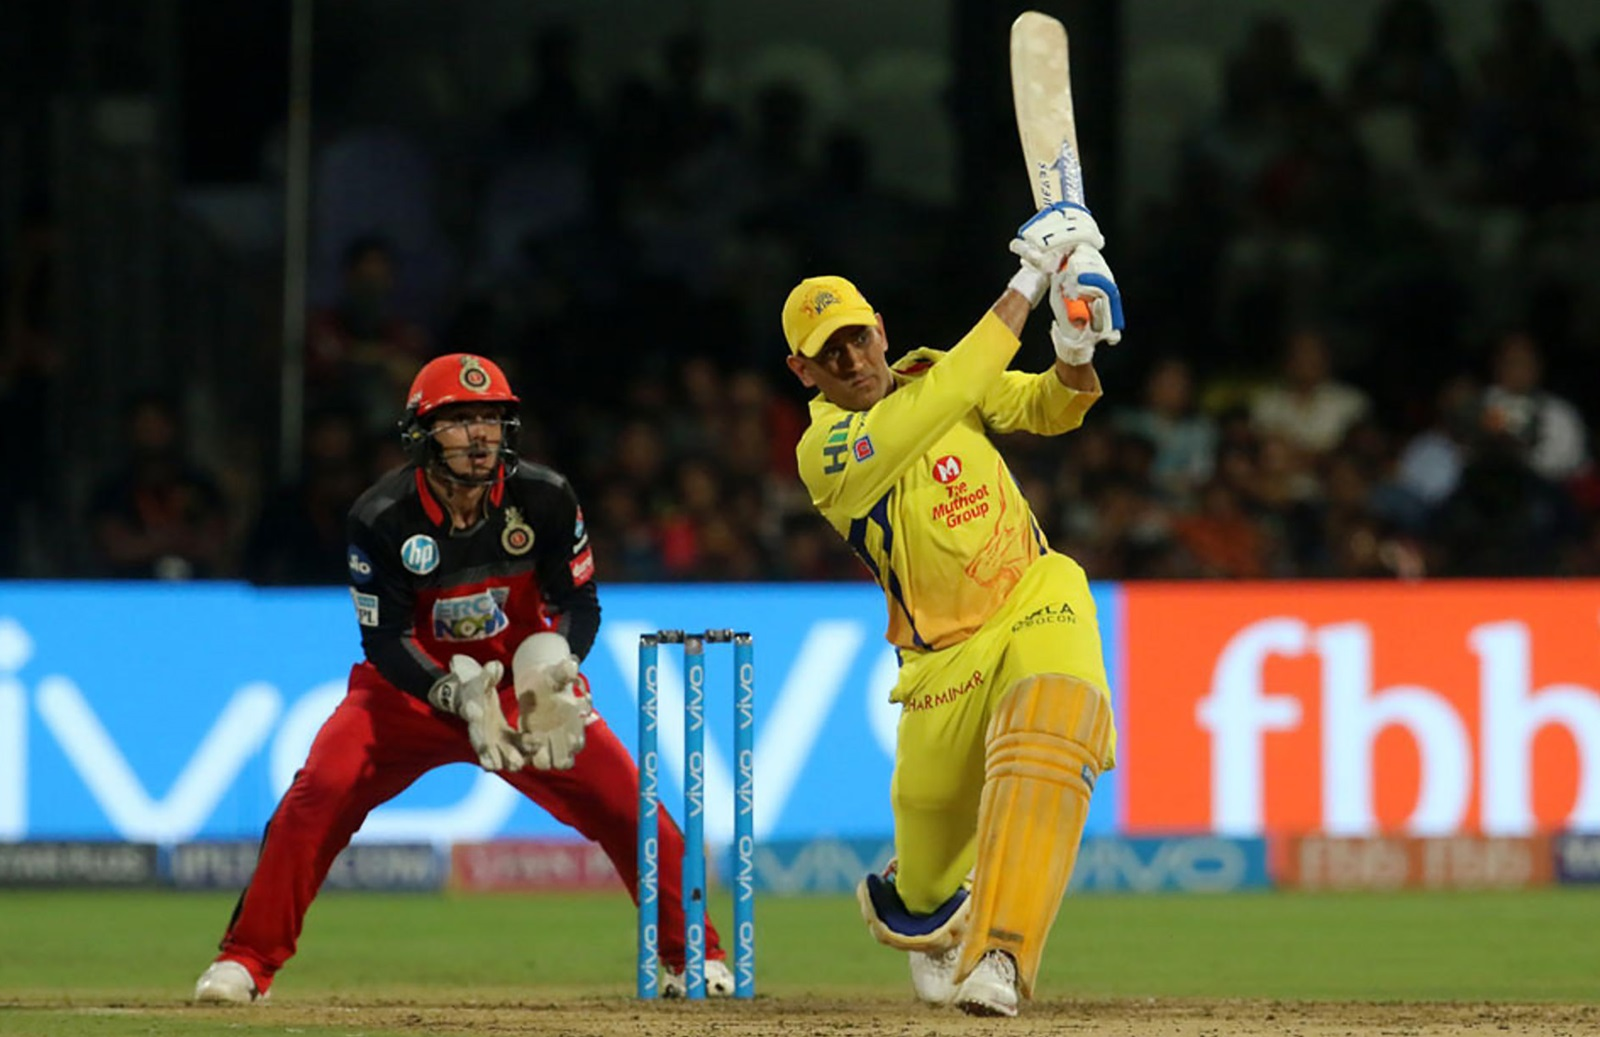 Dhoni Csk Reel In Mammoth Total Cricket Com Au